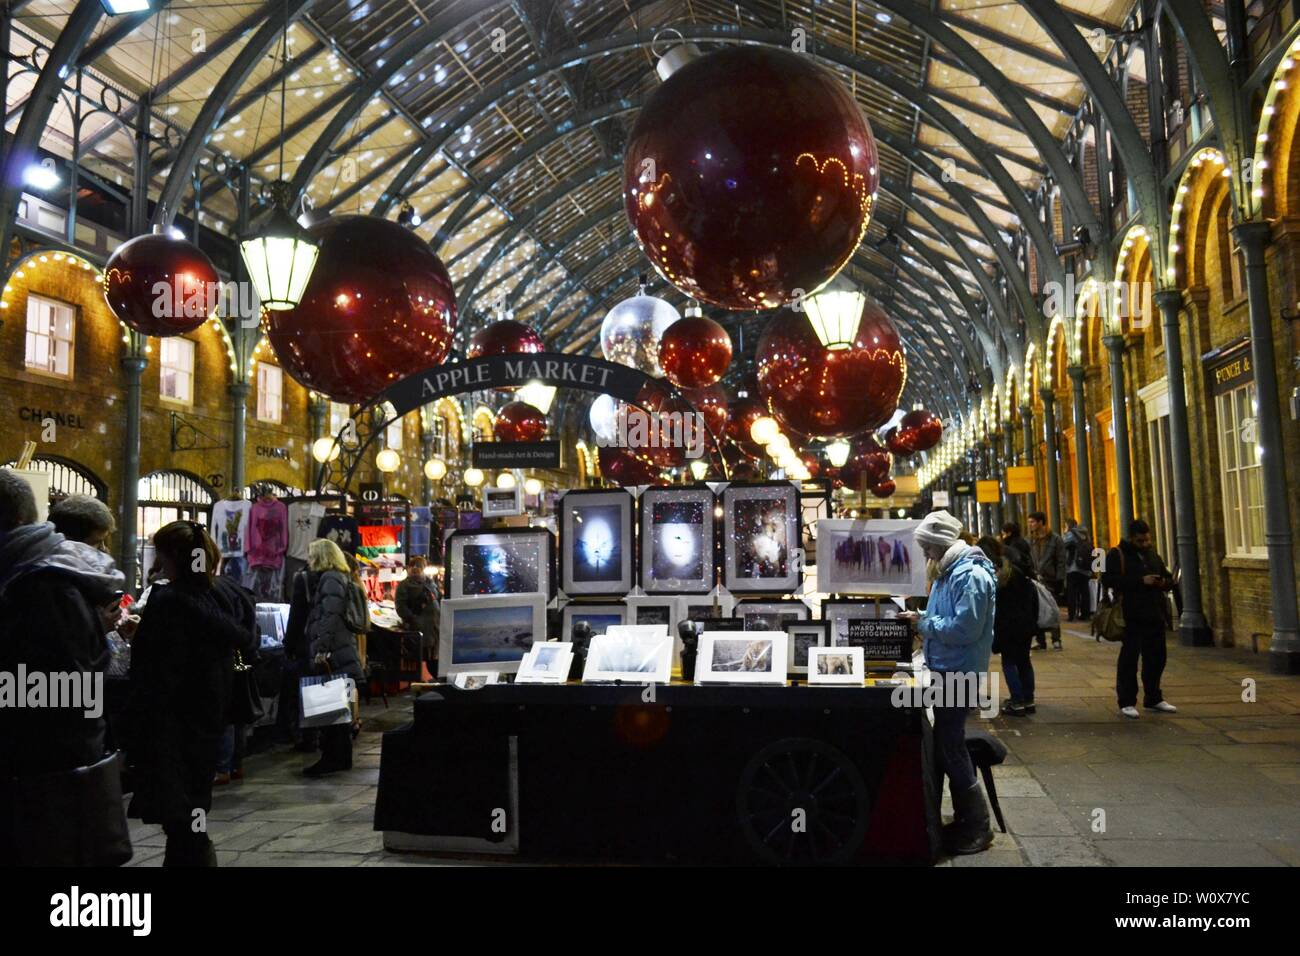 London/UK - November 27, 2013: People shopping at the Covent Garden Apple market decorated for Christmas holidays. Stock Photo